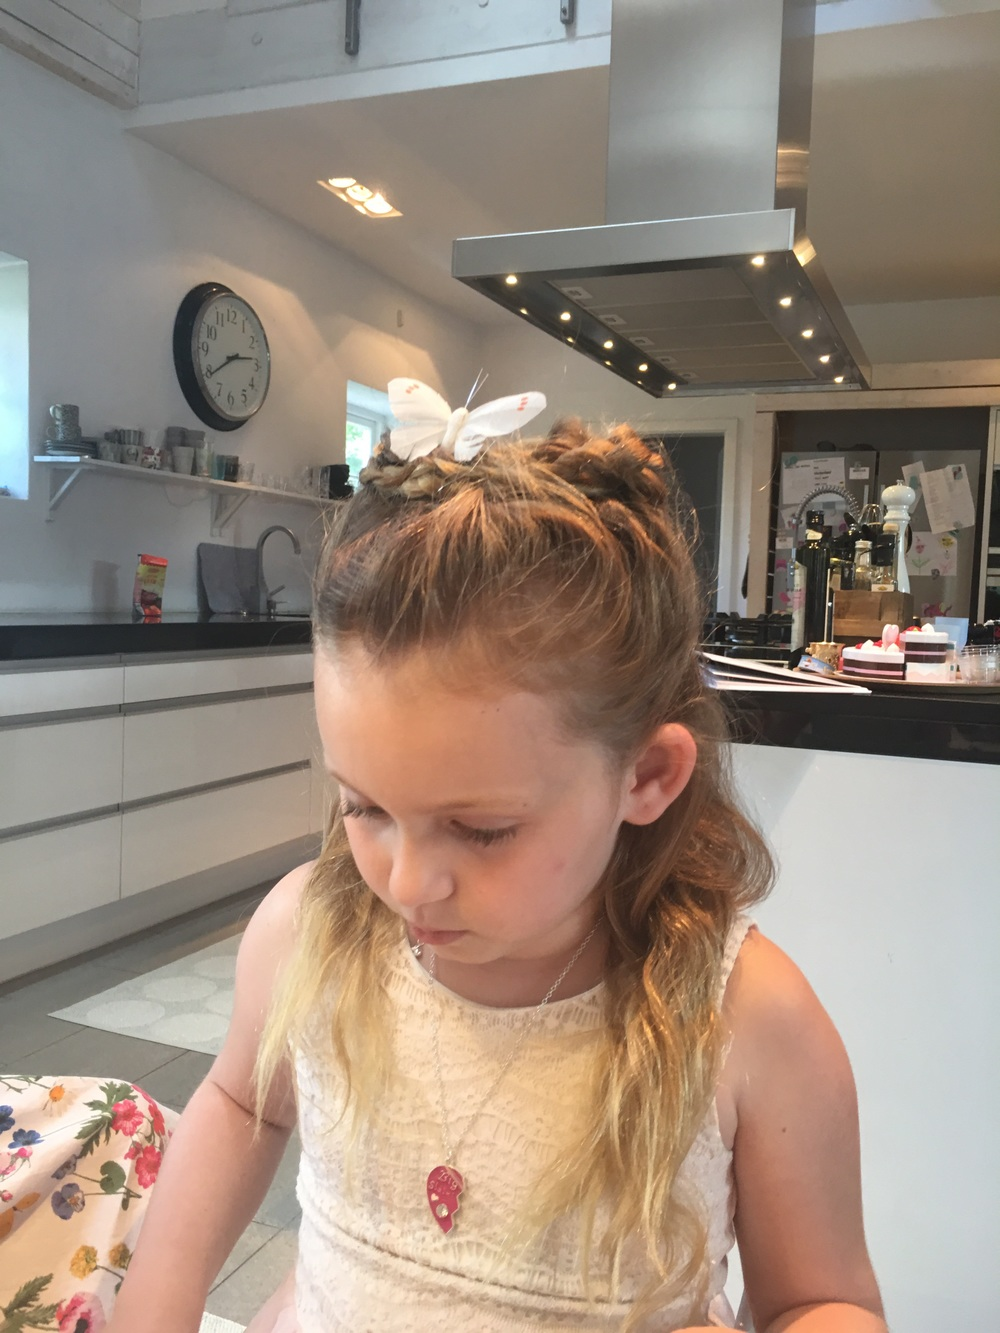 Monday Lily have here official butterfly in her hair for class.